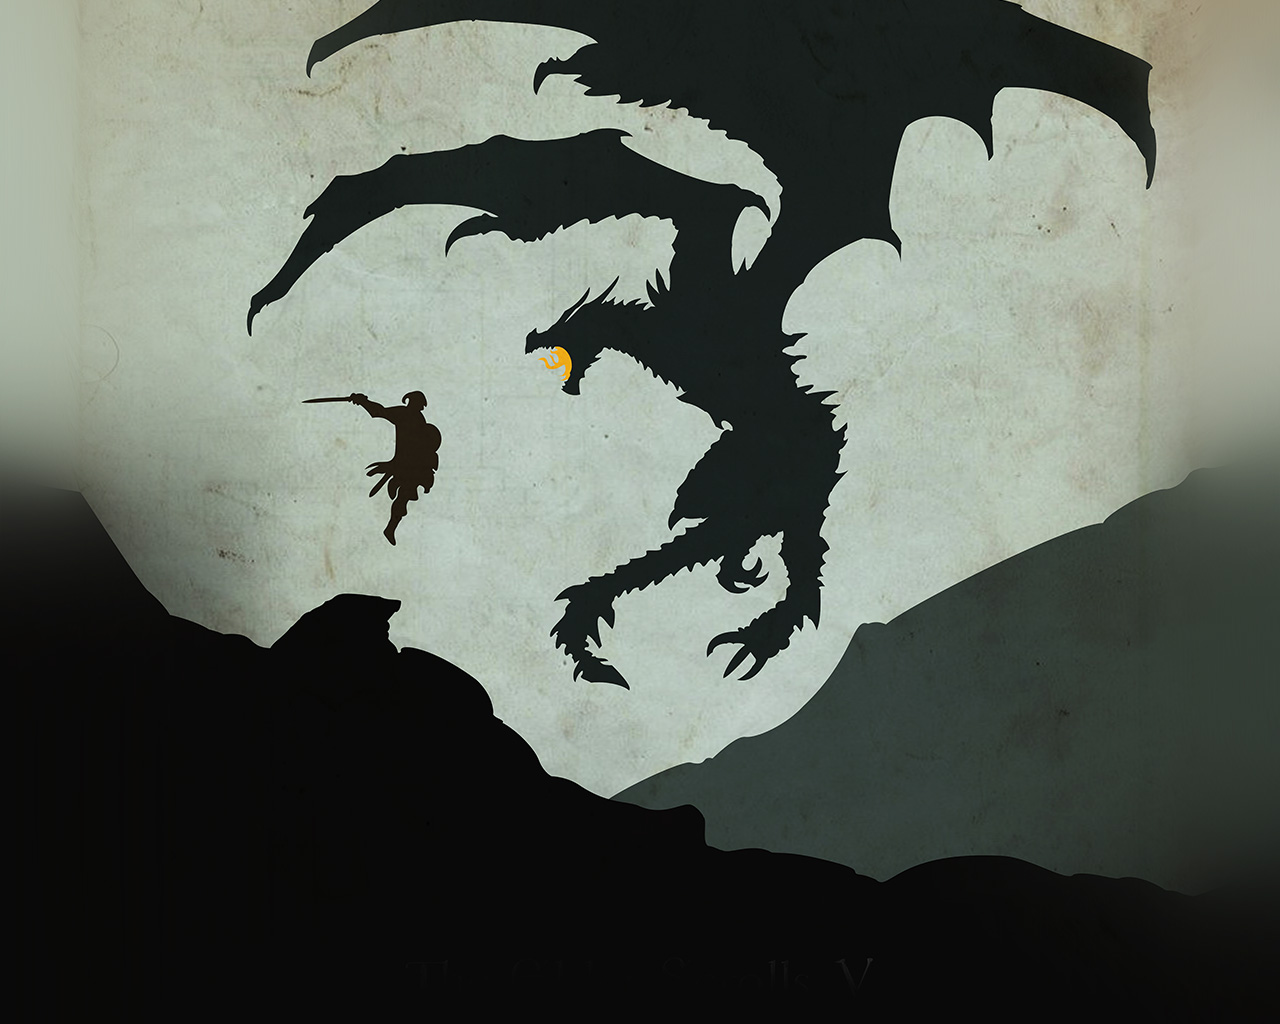 au57-skyrim-dragon-illustration-art-wallpaper